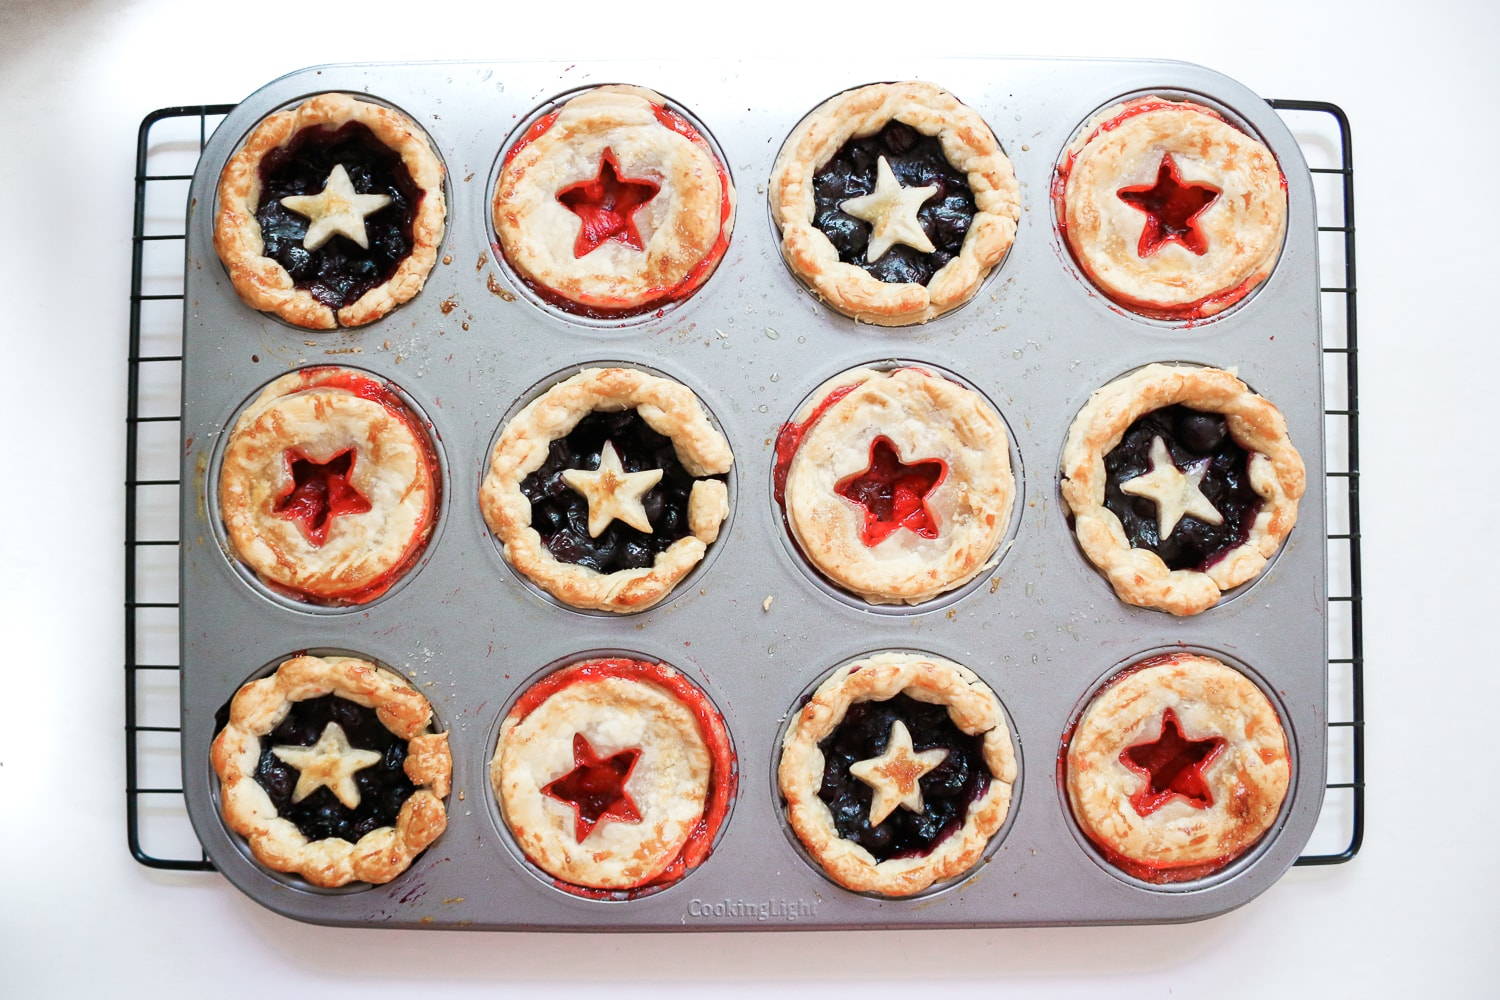 Blogger Stephanie Ziajka shows how to make miniature blueberry pies in a muffin tin on Diary of a Debutante